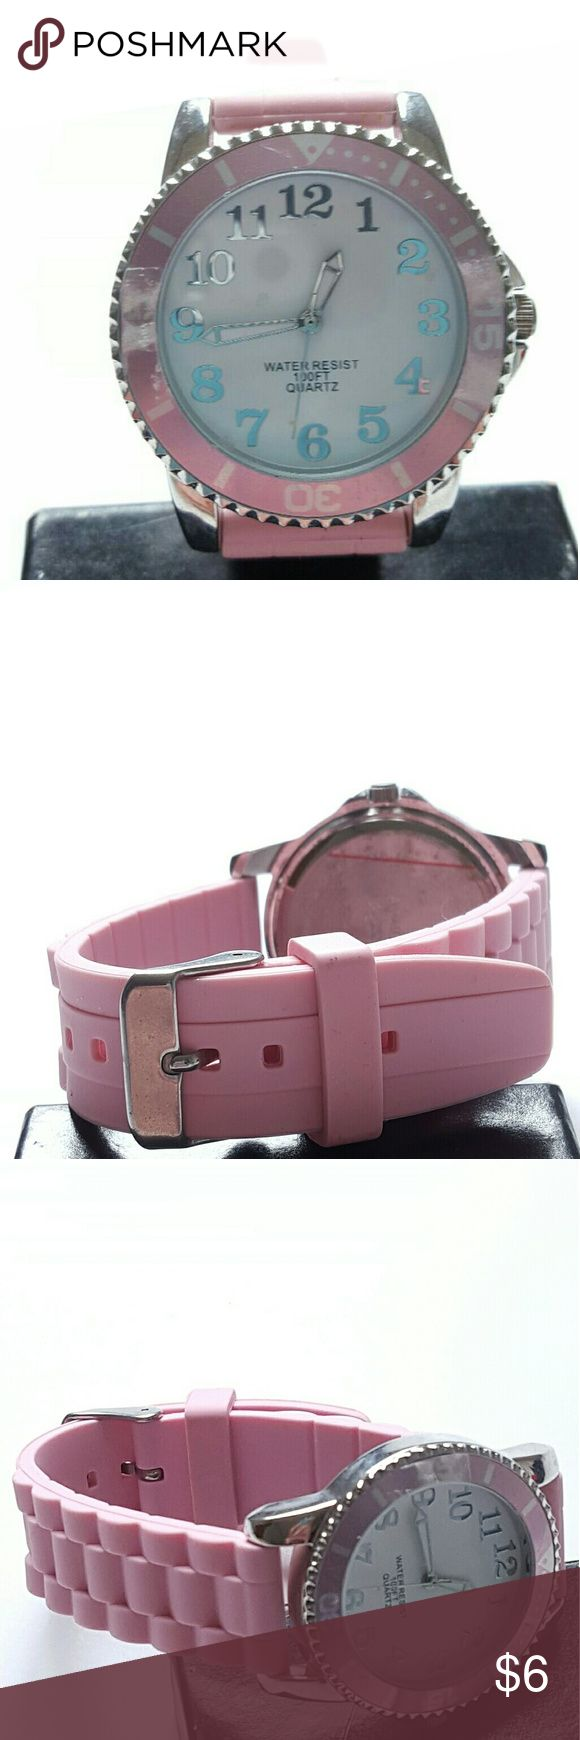 Pink dial wrist watch braided band silver case Pink dial wrist watch braided band silver case white face quartz water resistent soft light pink band Good condition the plastic is slightly rising but not really noticeable quick fix #pink #dialwatch #watches #wristwatch #watch #quartz #lightpink #silver #braided #white #waterresistent Accessories Watches